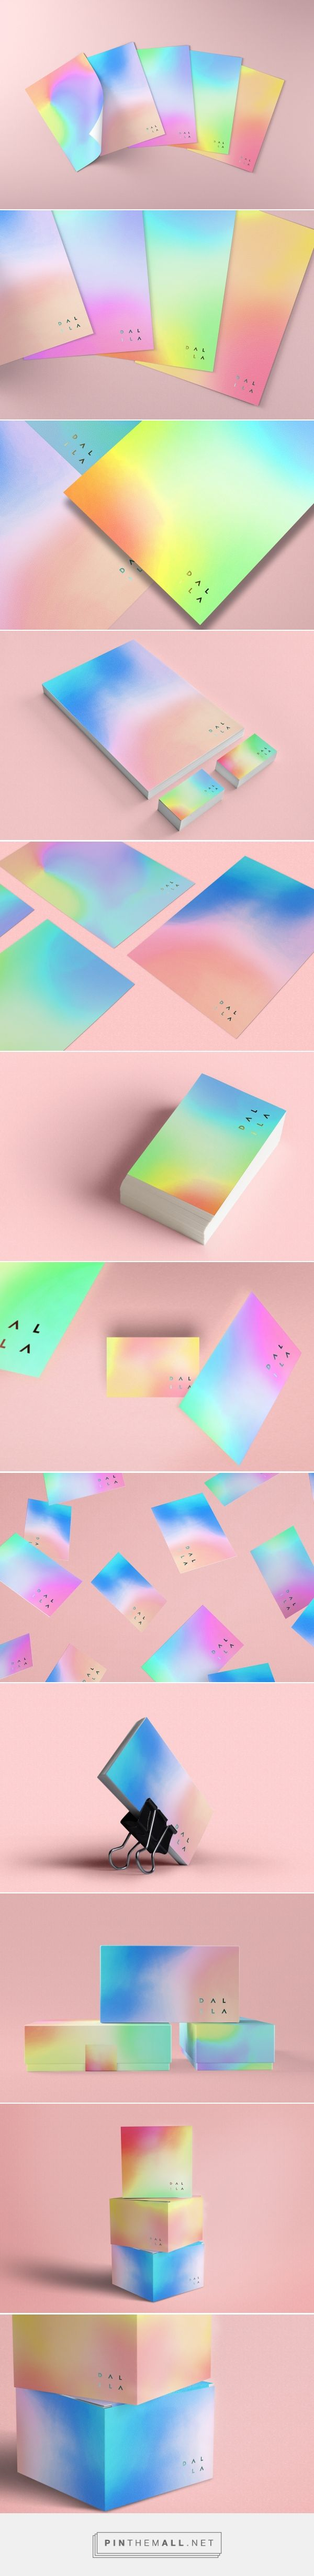 Liked on Pinterest: D Λ L I L Λ on Behance - created on 2015-09-13 00:53:11 Pinterest color story